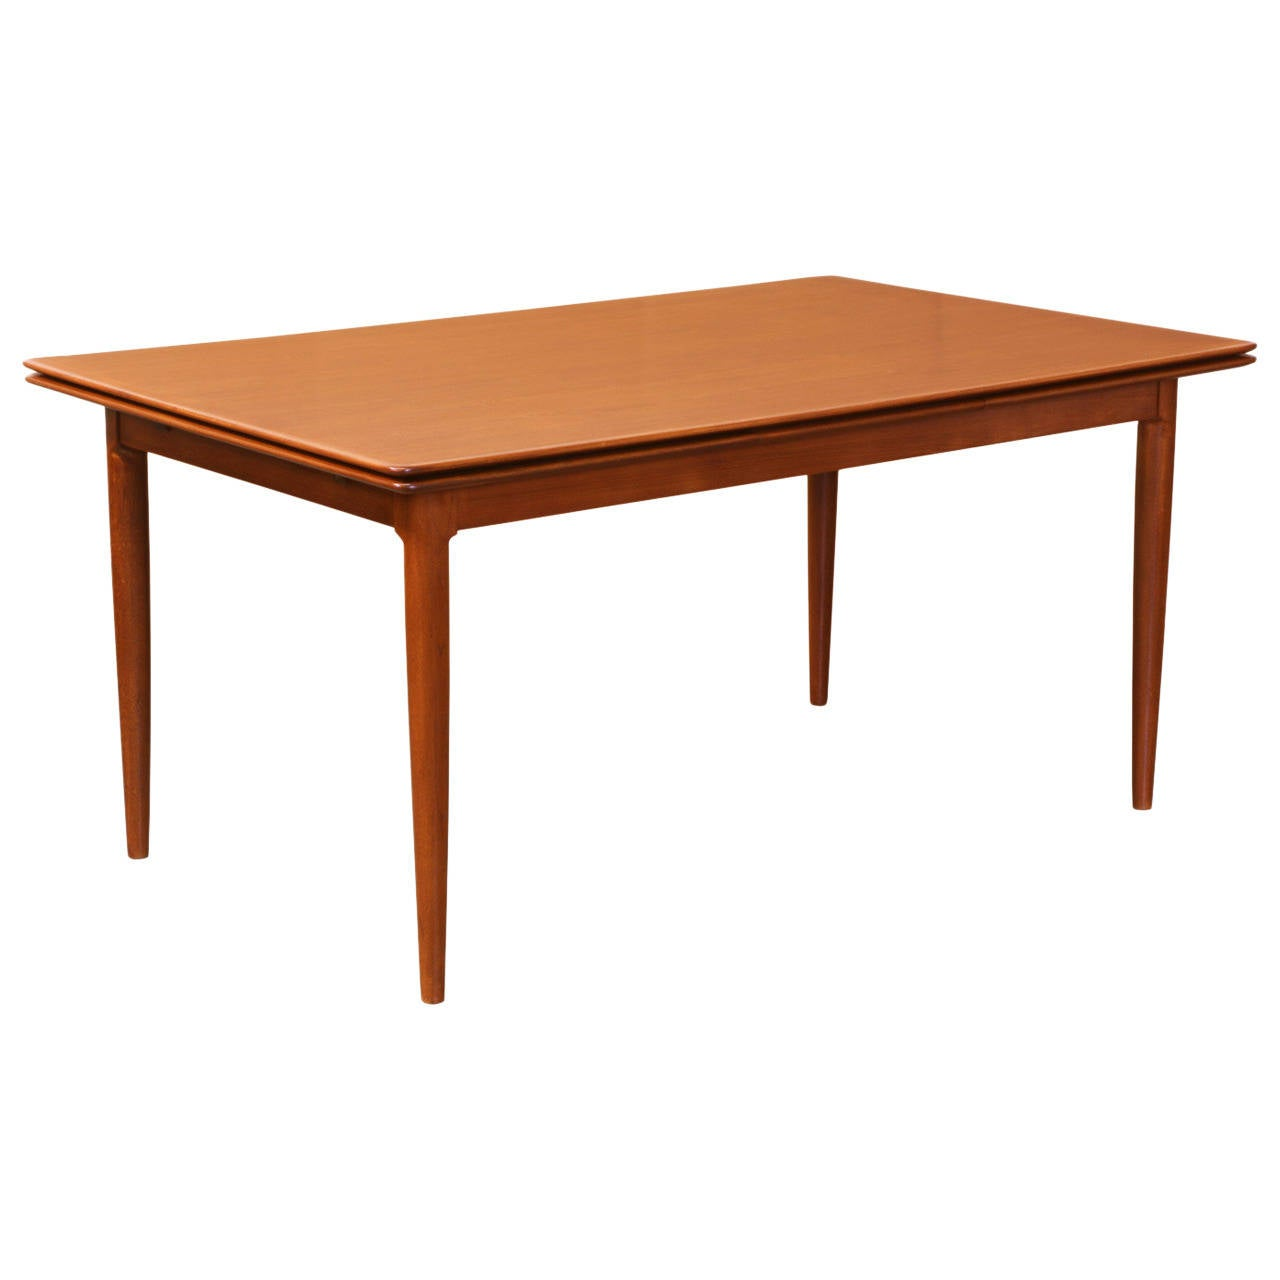 Danish modern teak draw leaf dining table for sale at 1stdibs for Danish modern dining room table